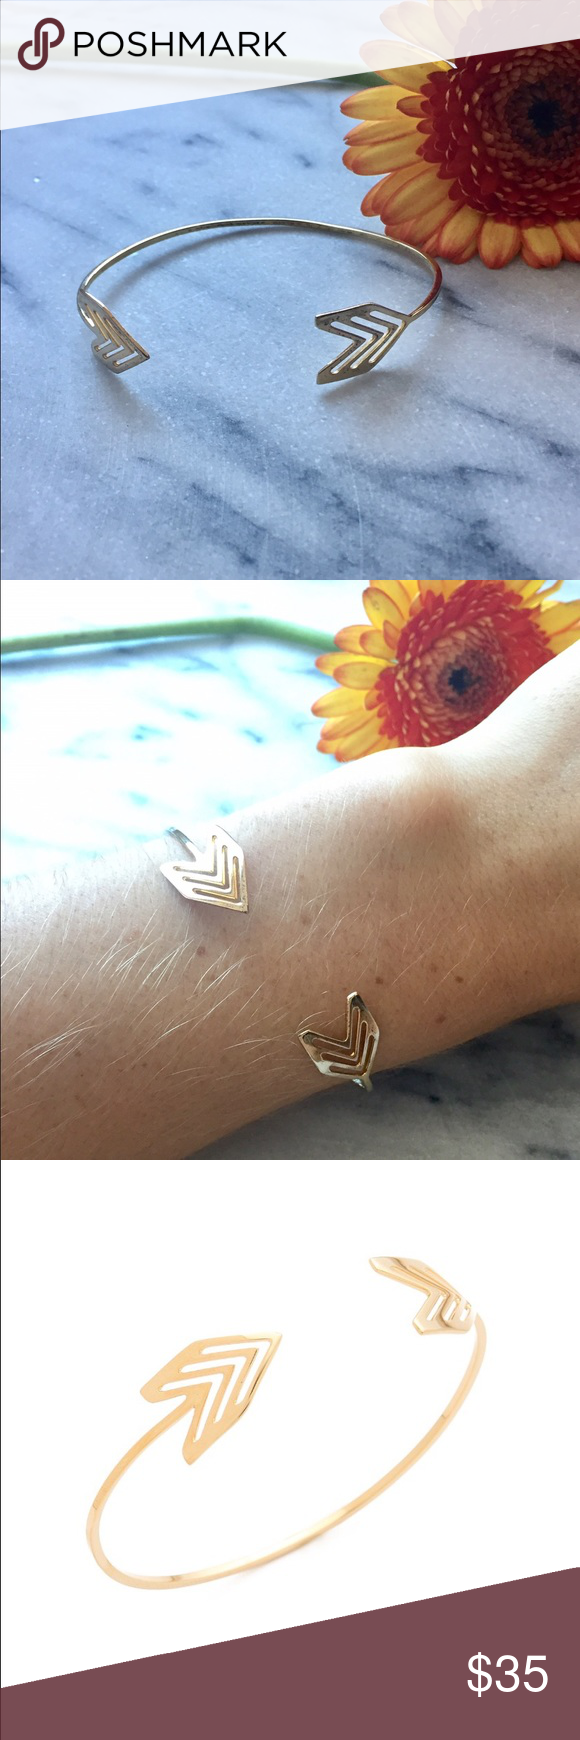 Gorjana Chevron Tribal Cuff Bracelet A delicate cuff from Gorjana wraps the wrist with a playful arrow of chevron cutouts. Malleable. Gold plate. Imported, China.  MEASUREMENTS Diameter: 2.25in / 5.5cm Gorjana Jewelry Bracelets